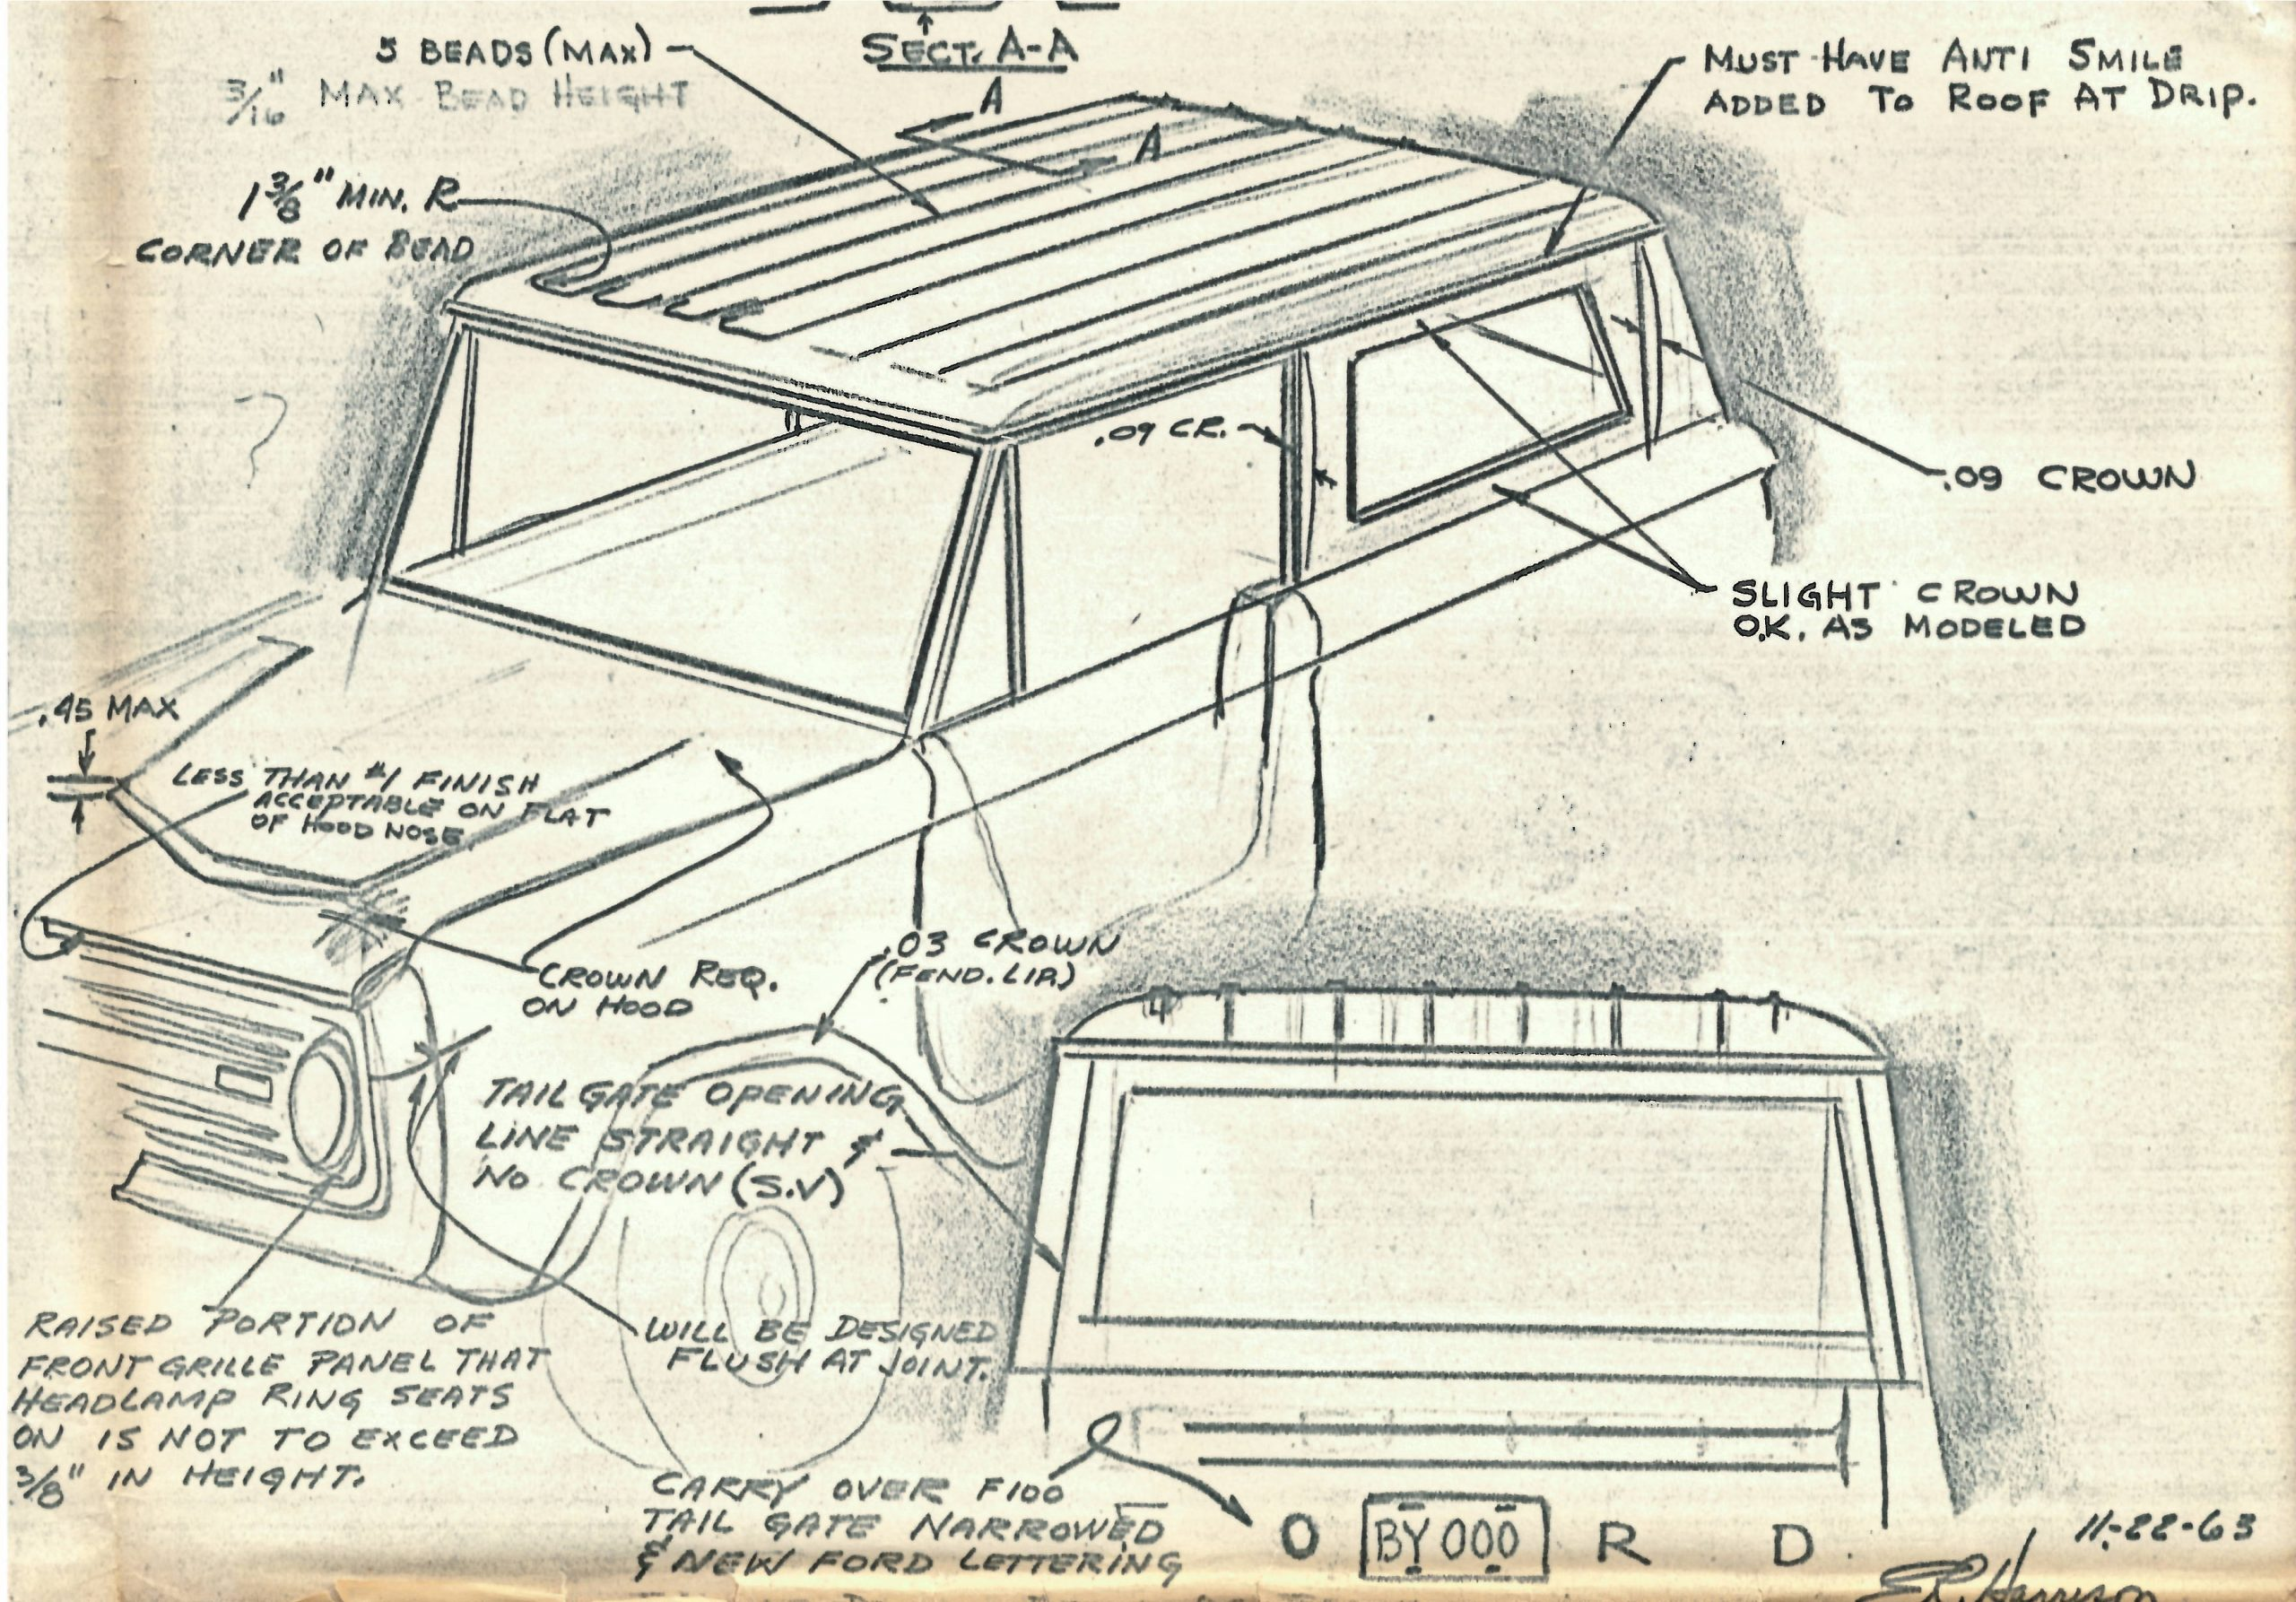 Original Vintage Bronco Design Sketch